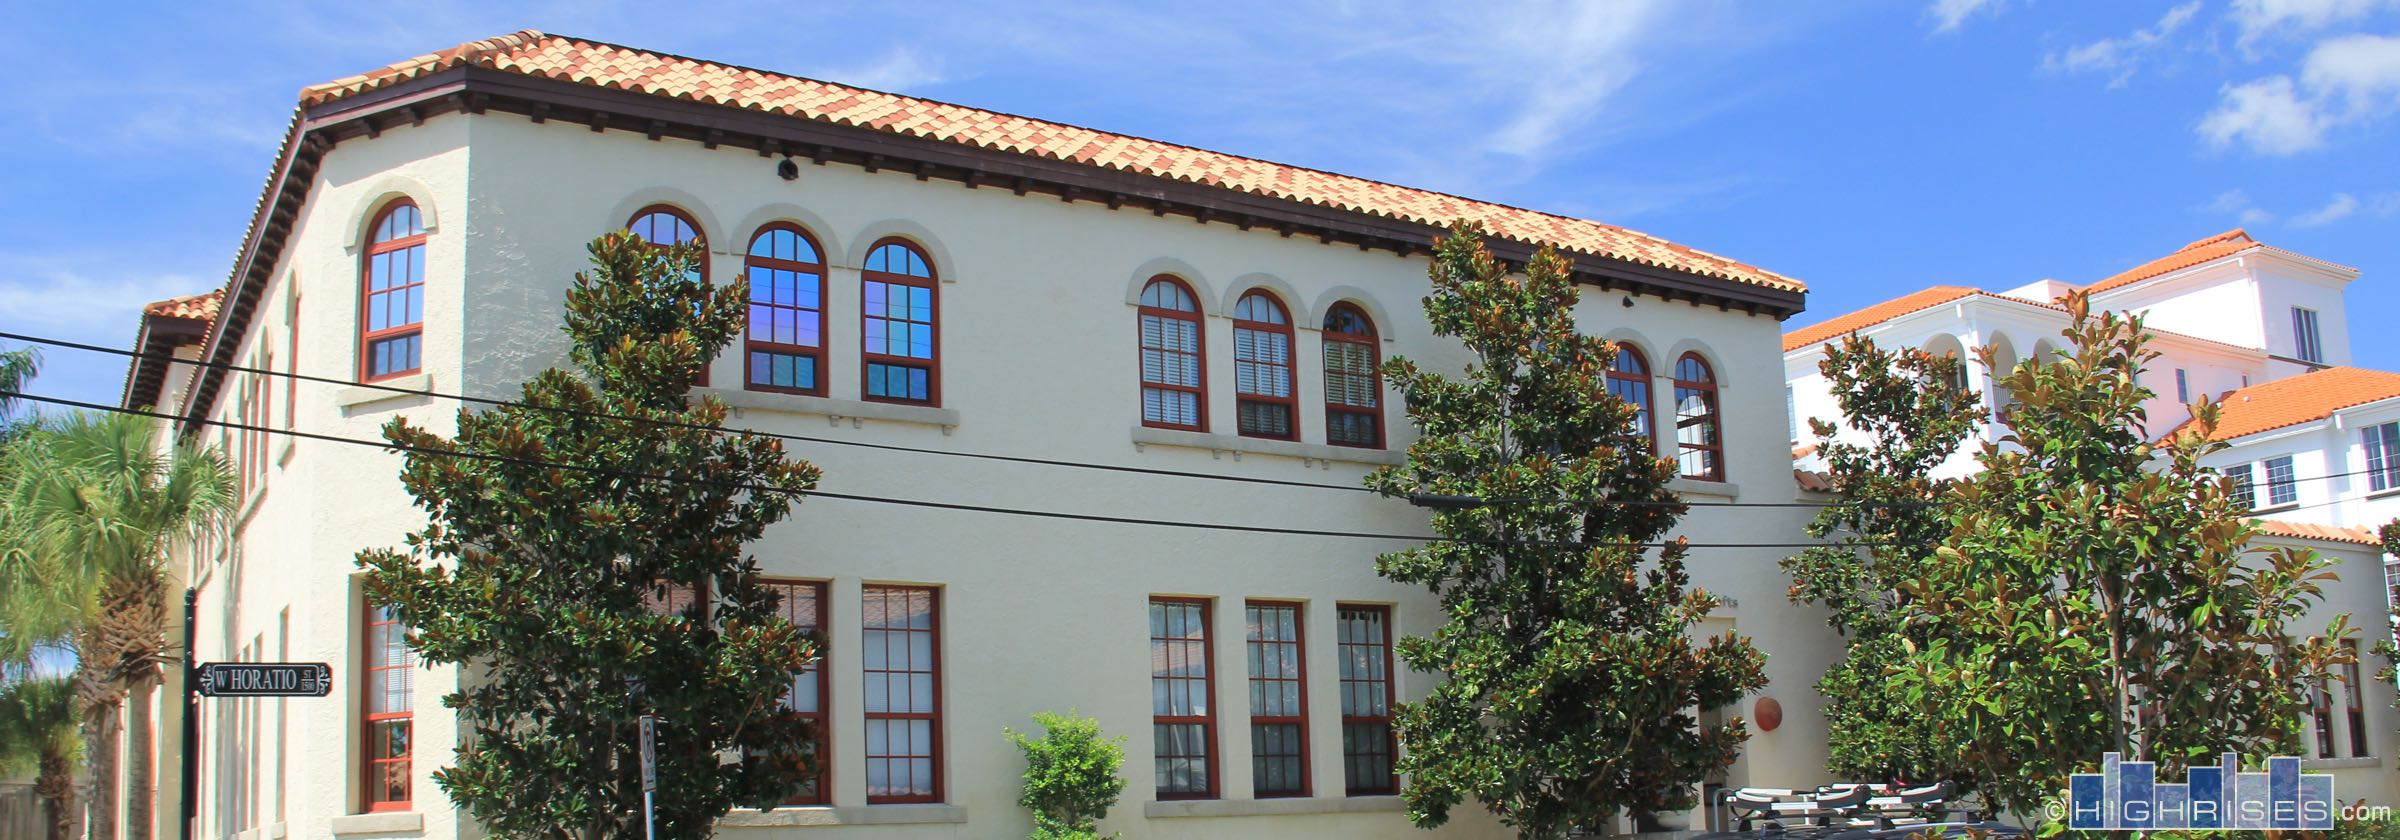 The Seybold Lofts Of Tampa FL 1501 Horatio St